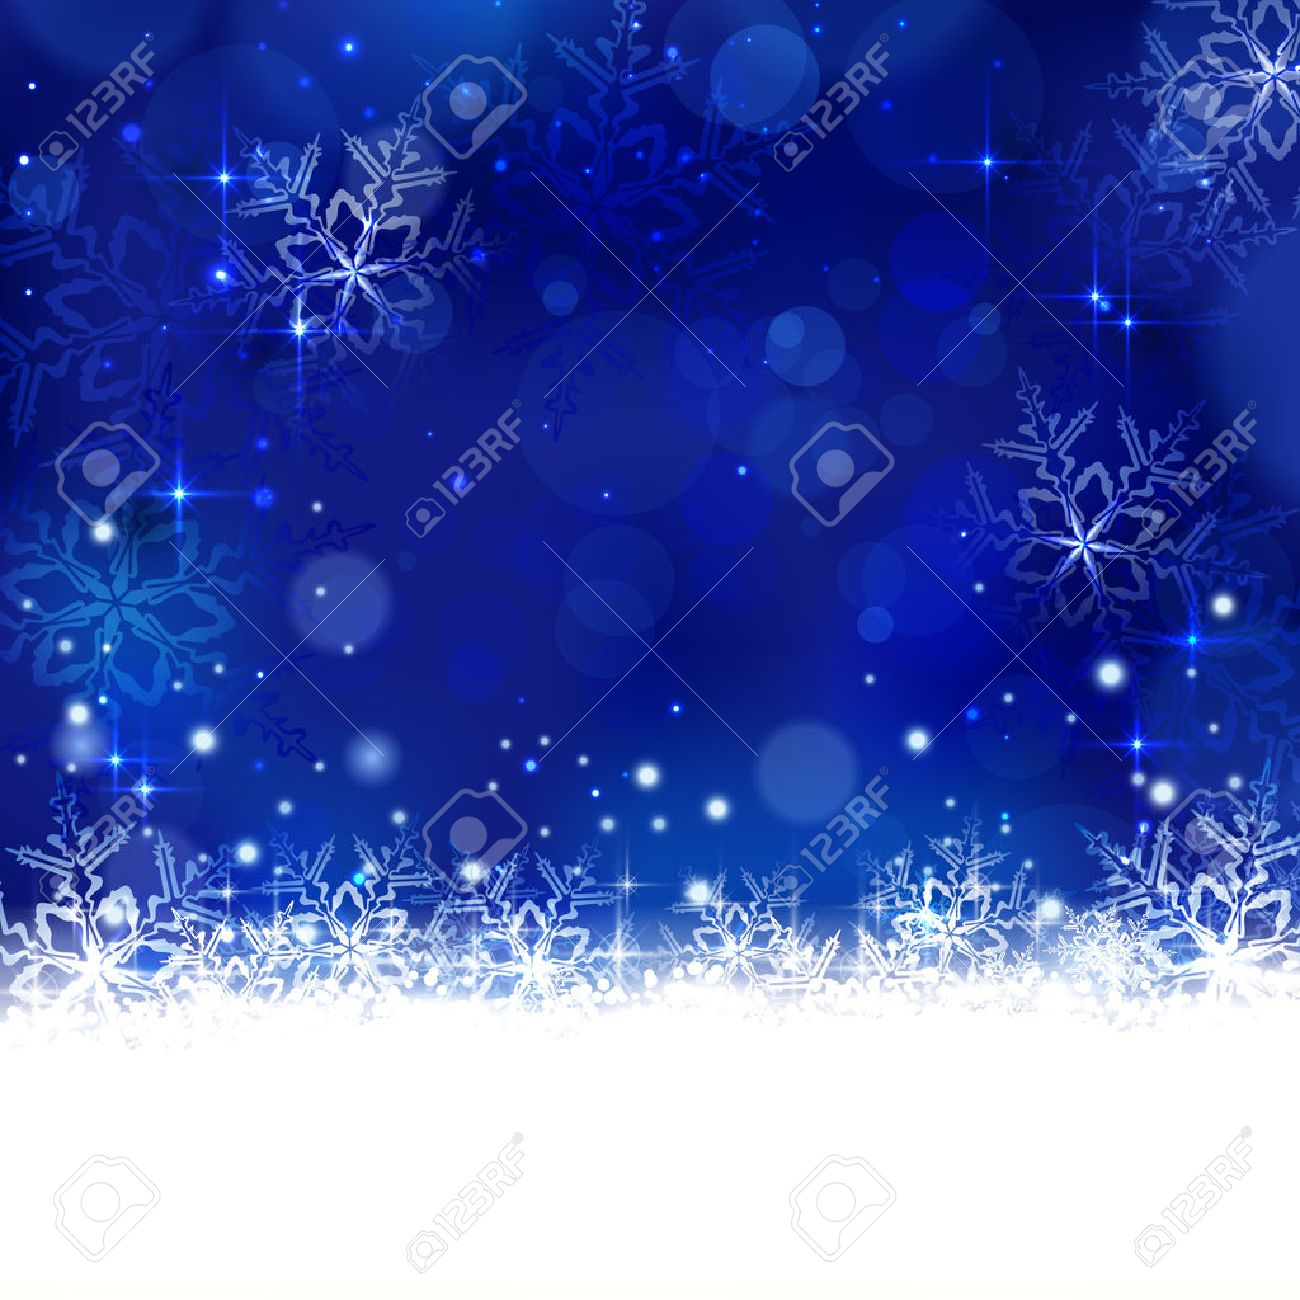 Christmas background with shiny light effects, blurry lights, and glittering snowflakes in shades of blue. Great for the any winter design and festive season of Christmas to come. - 33003661